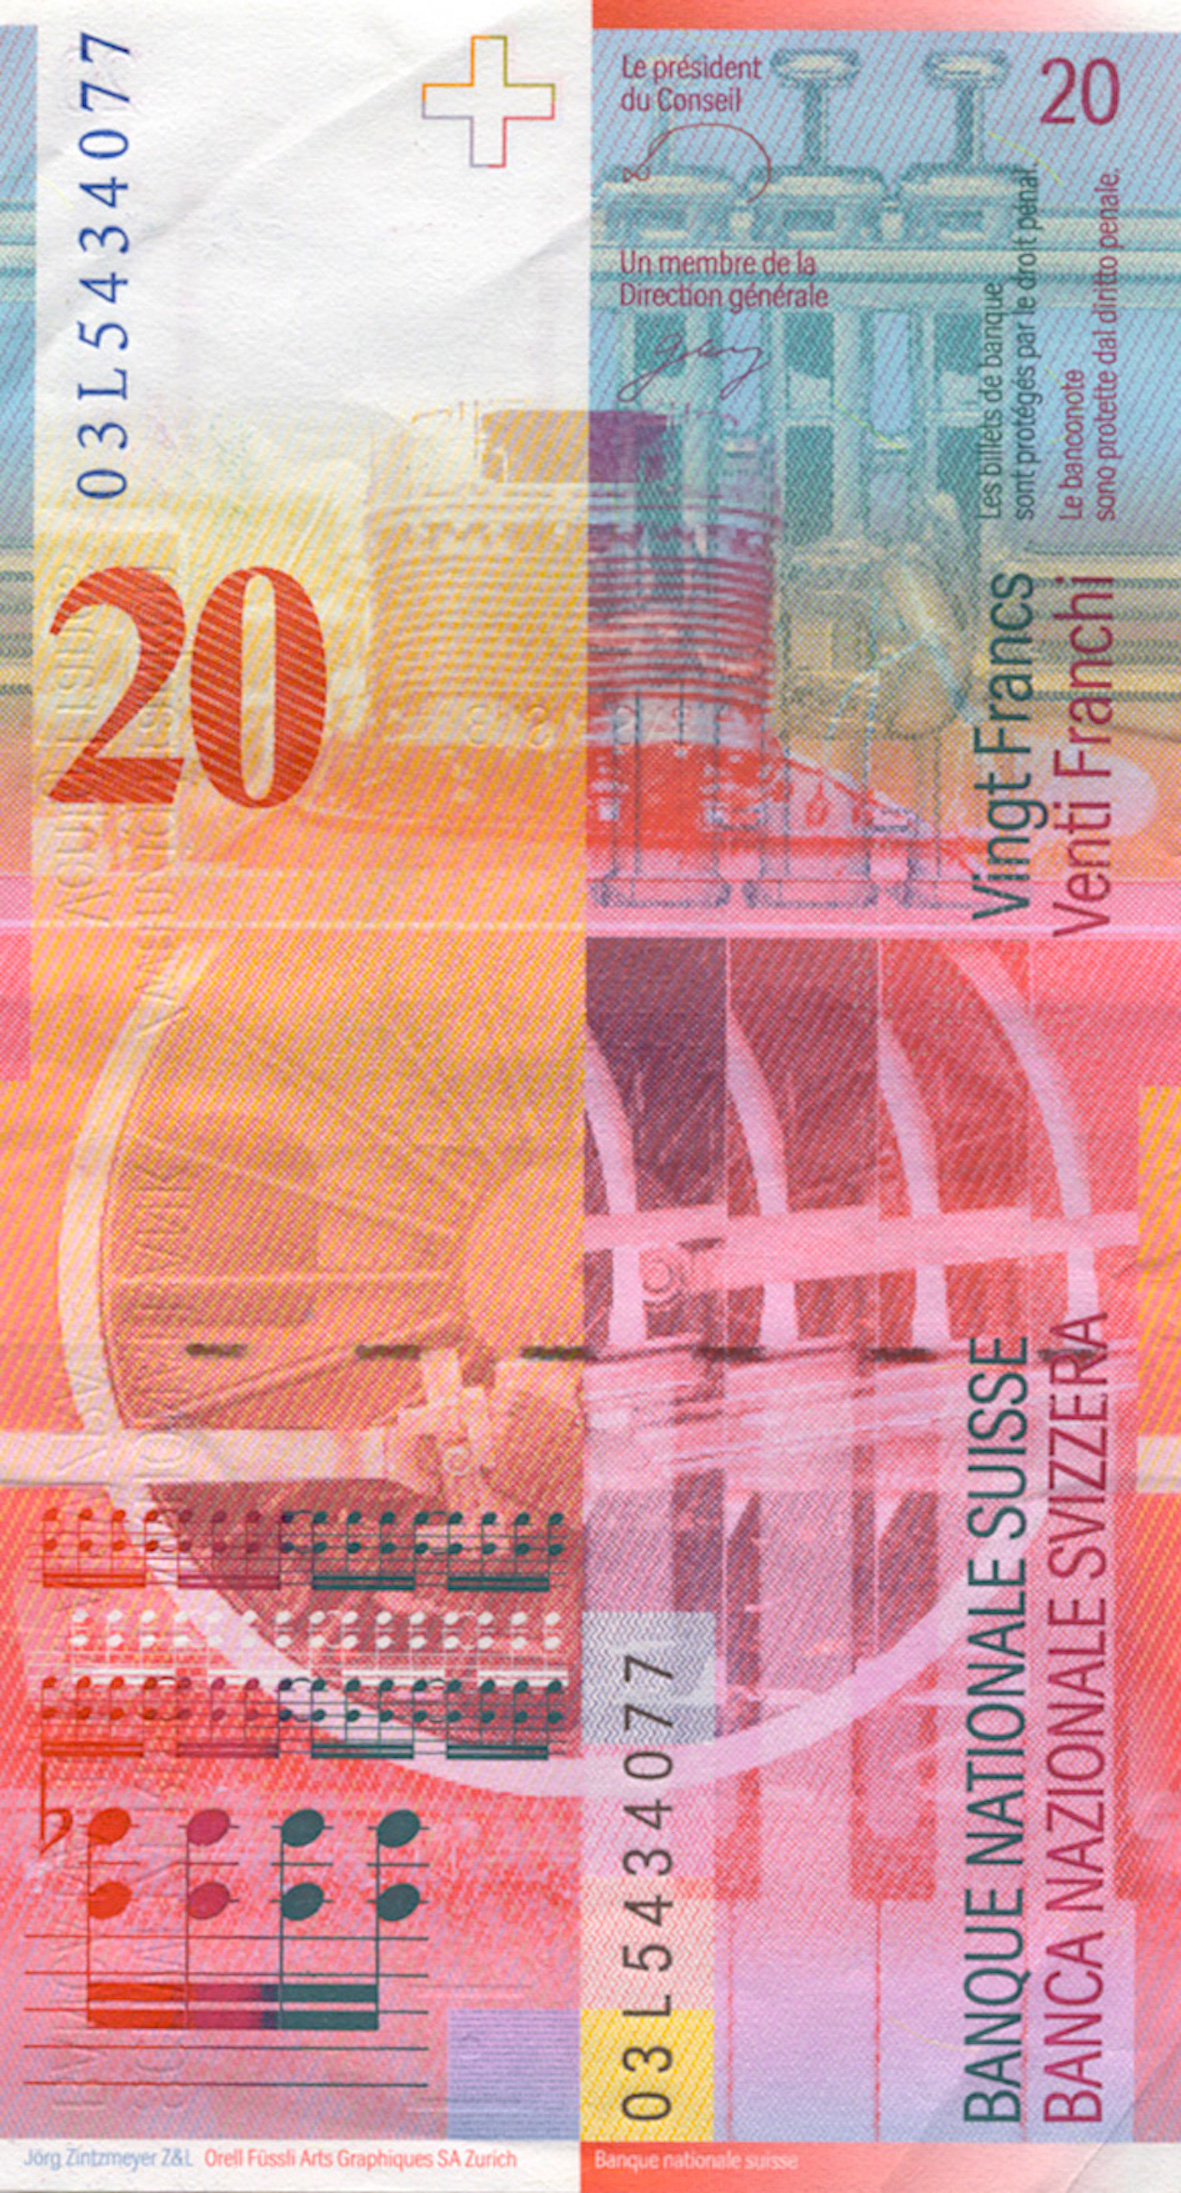 Swiss Confederation, 20 Franks 1980, 8th banknote series, in circulation since 1995 (reverse)